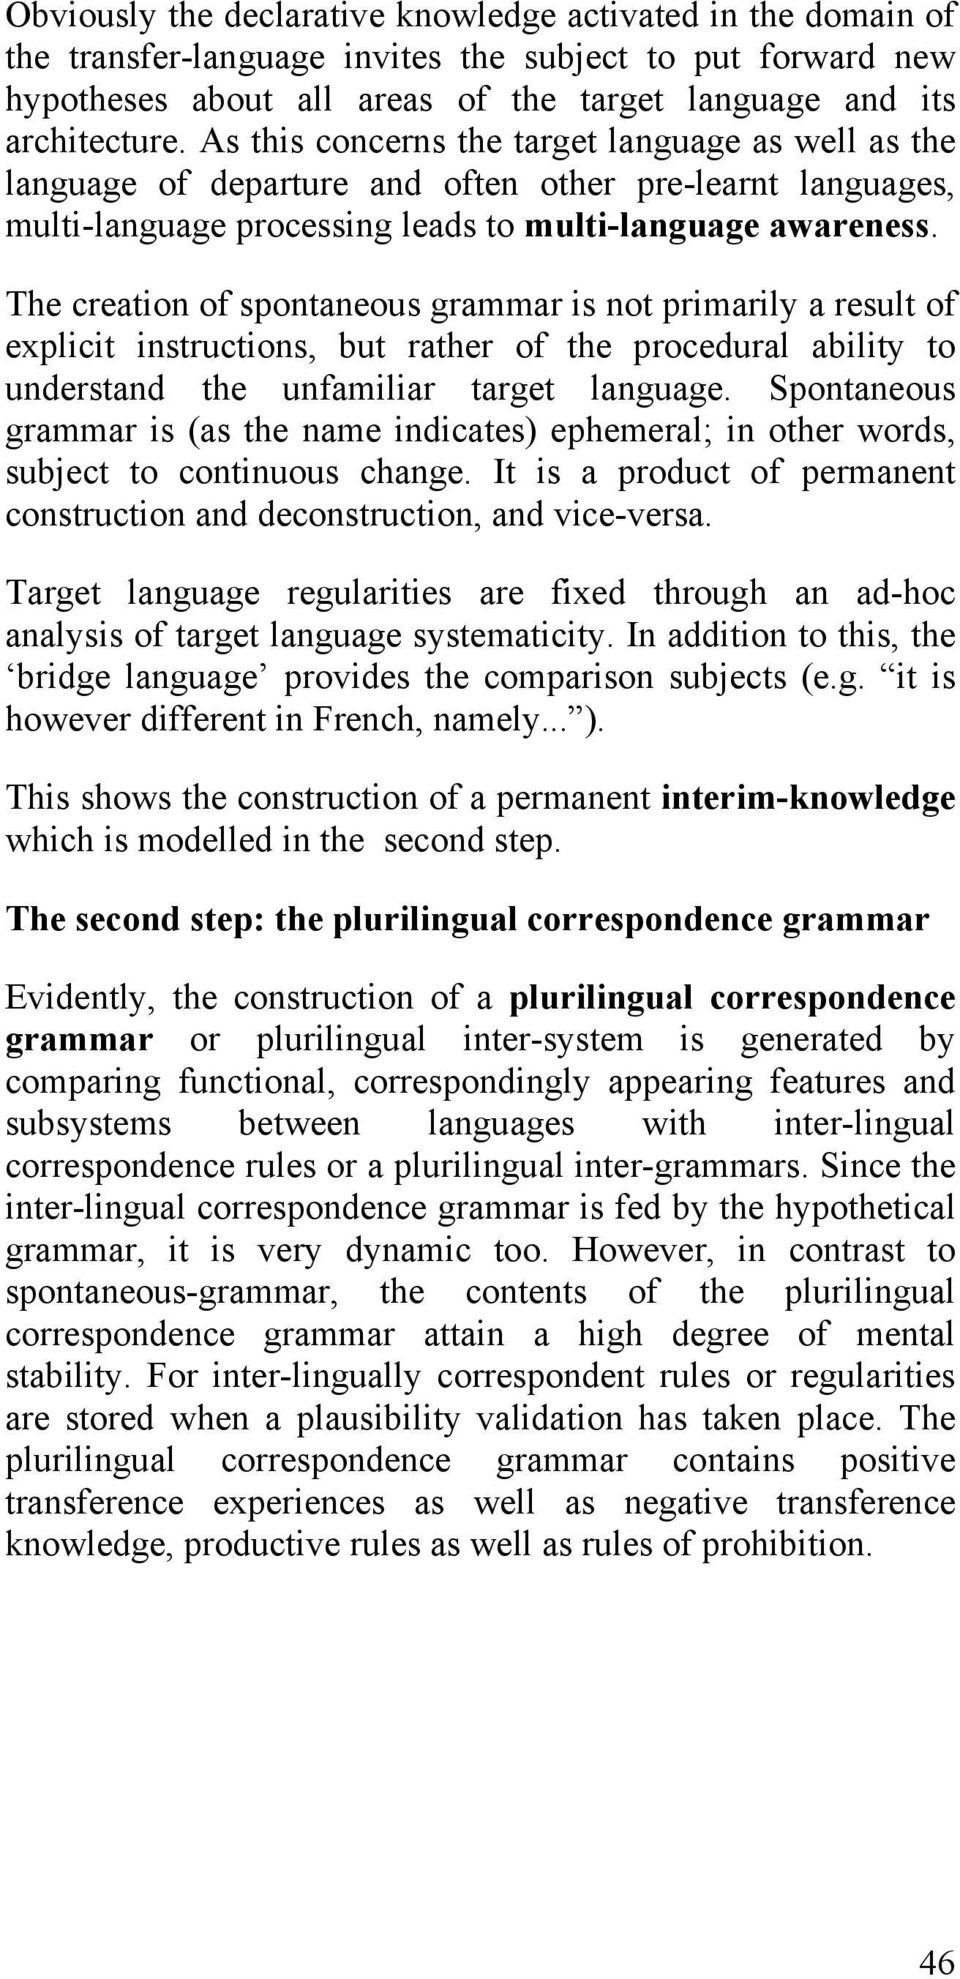 The creation of spontaneous grammar is not primarily a result of explicit instructions, but rather of the procedural ability to understand the unfamiliar target language.